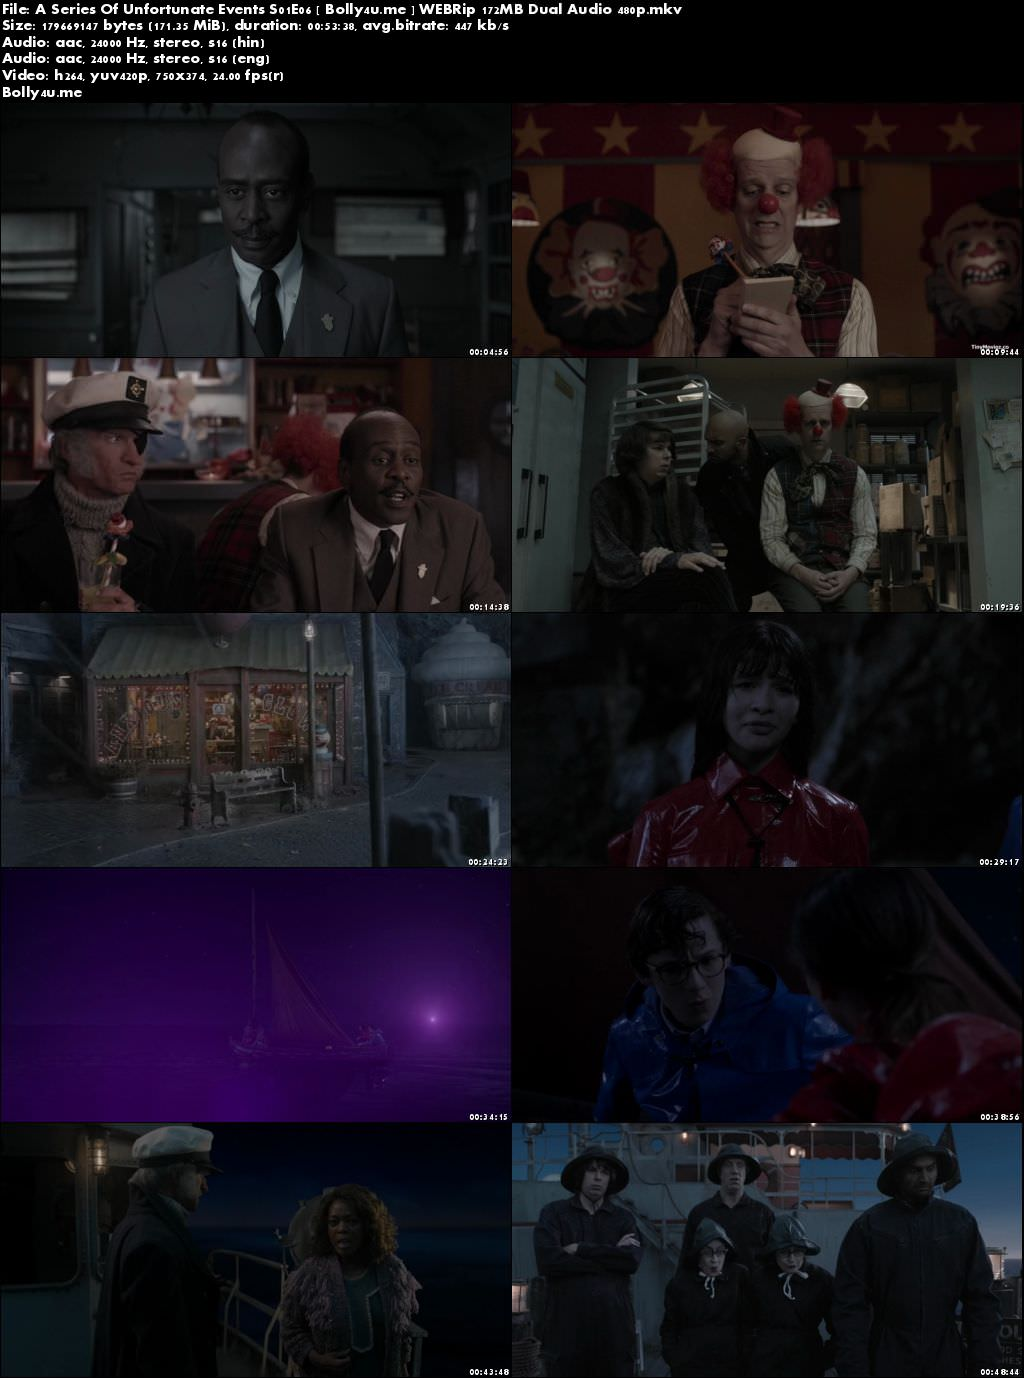 A Series Of Unfortunate Events S01E06 WEBRip 170MB Hindi Dual Audio 480p Download